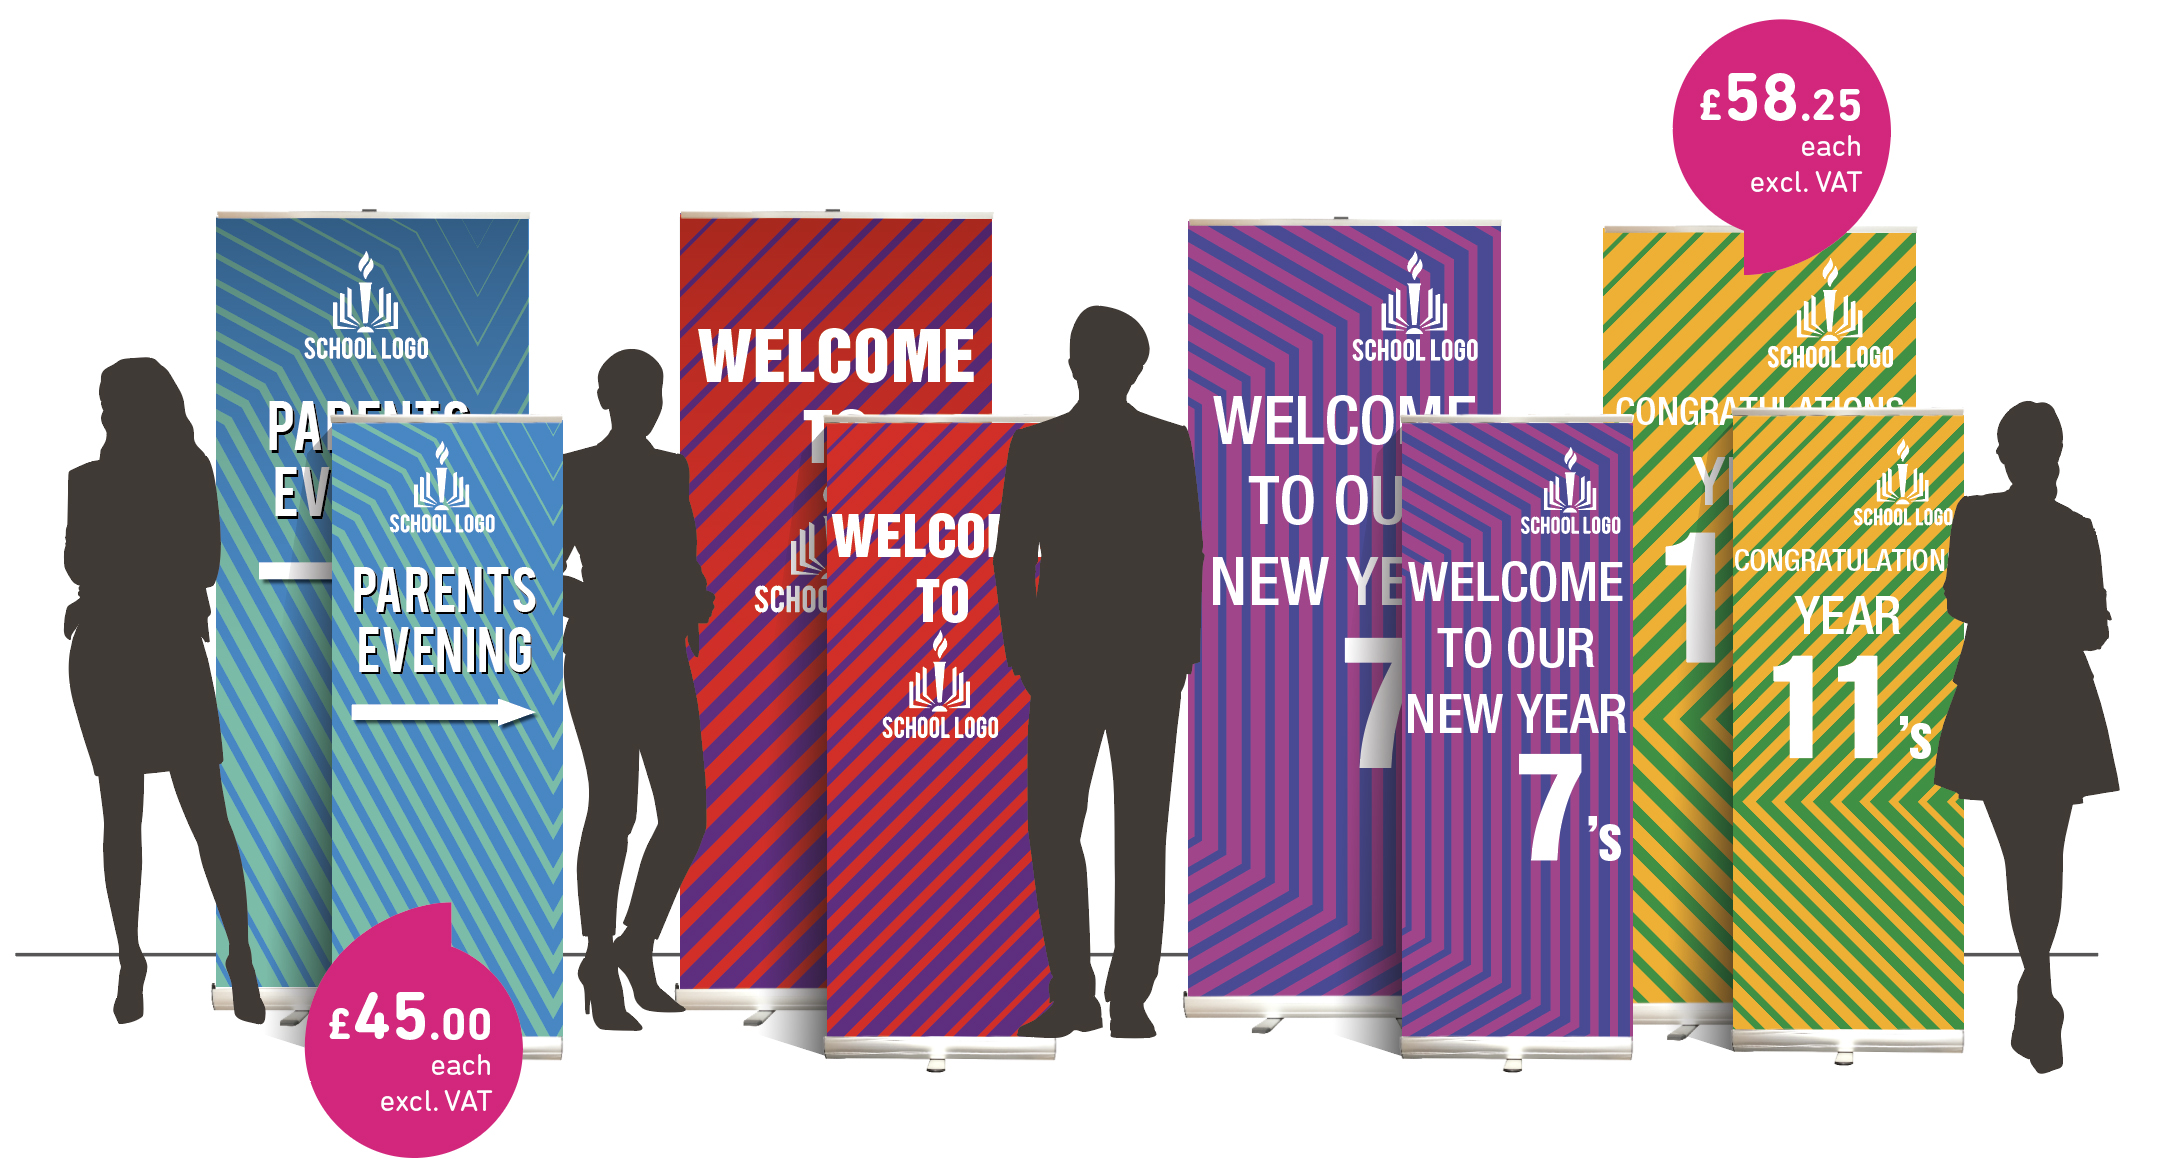 InternalEventBanners Internal Event <span>roller banners</span>